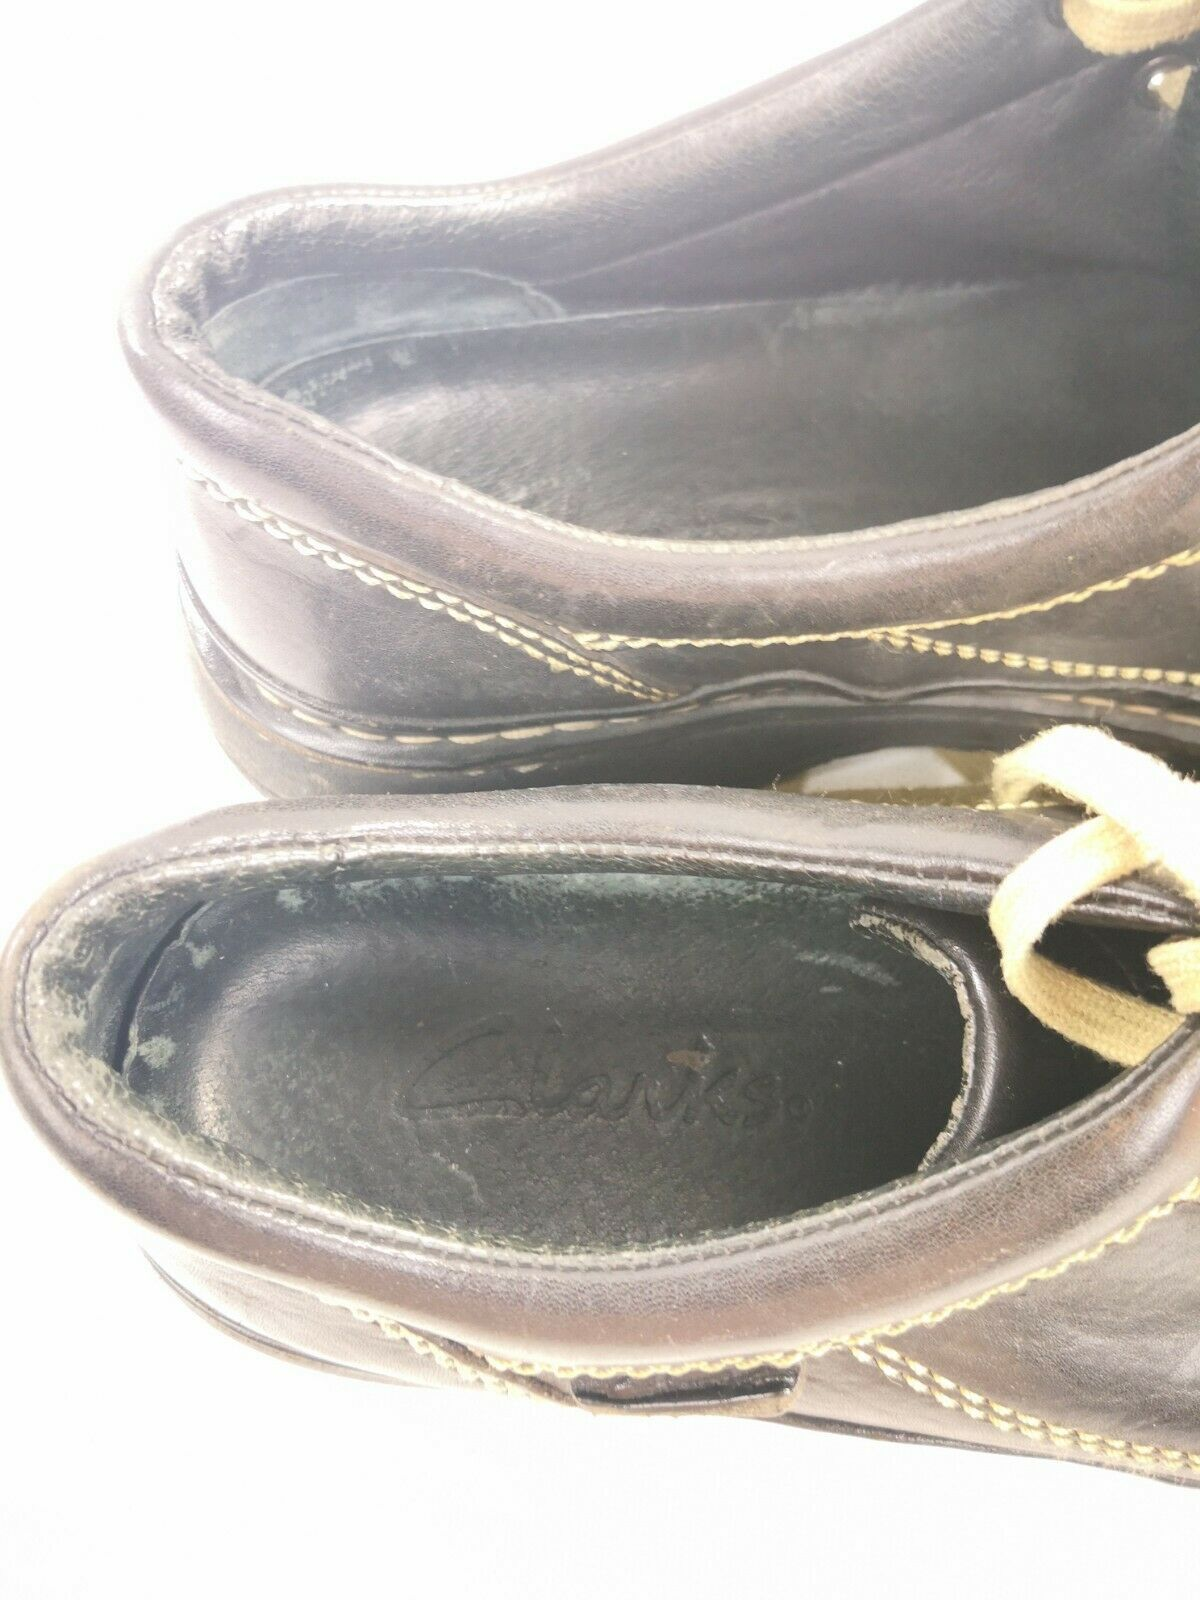 Clarks Black Leather Oxford Active Air Shoes 30089 Mens Size 10.5 M